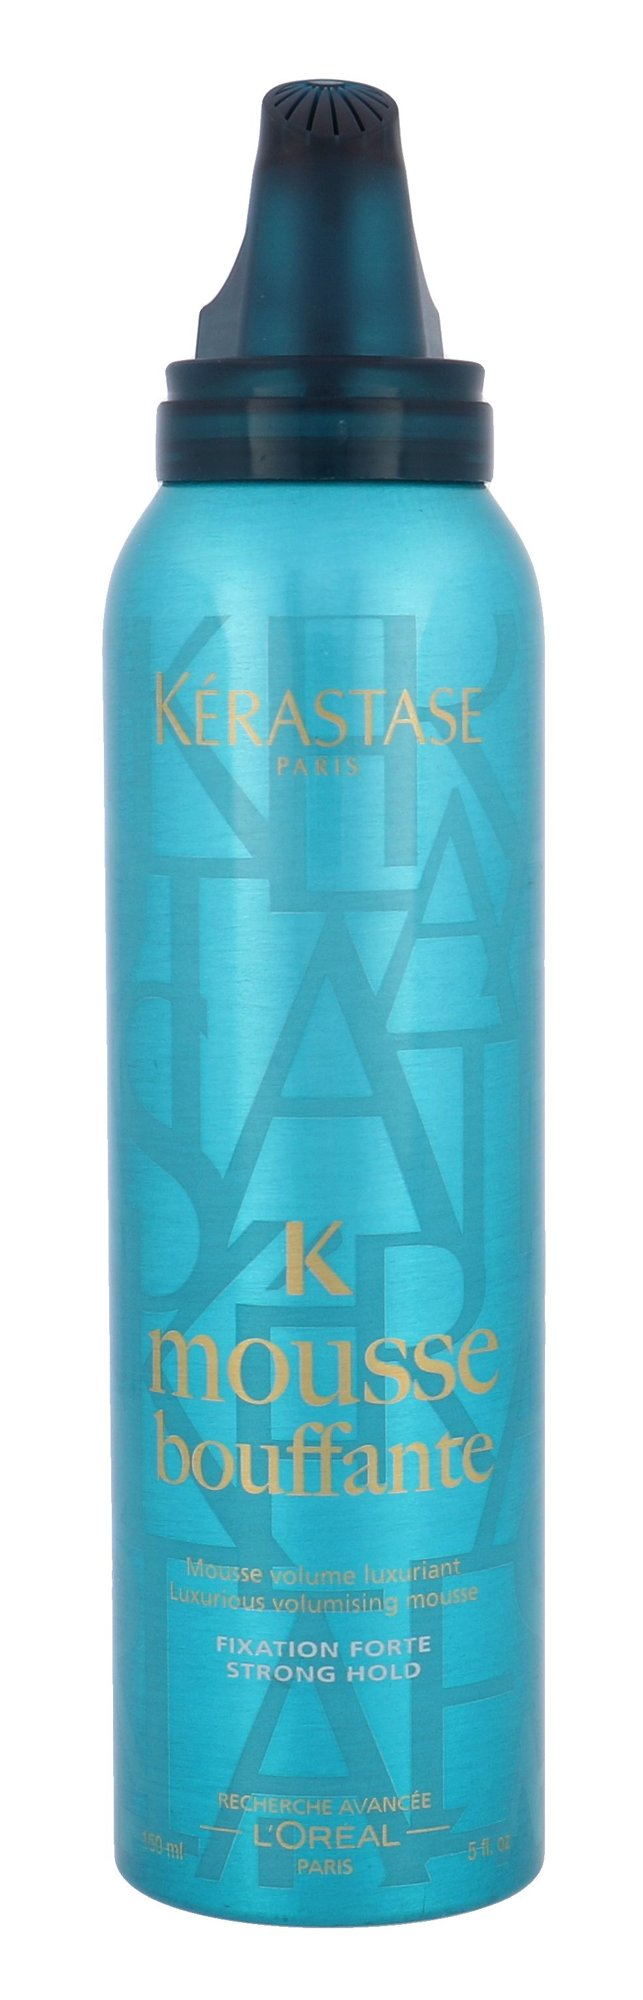 Kérastase Mousse Bouffante Hair Mousse 150ml